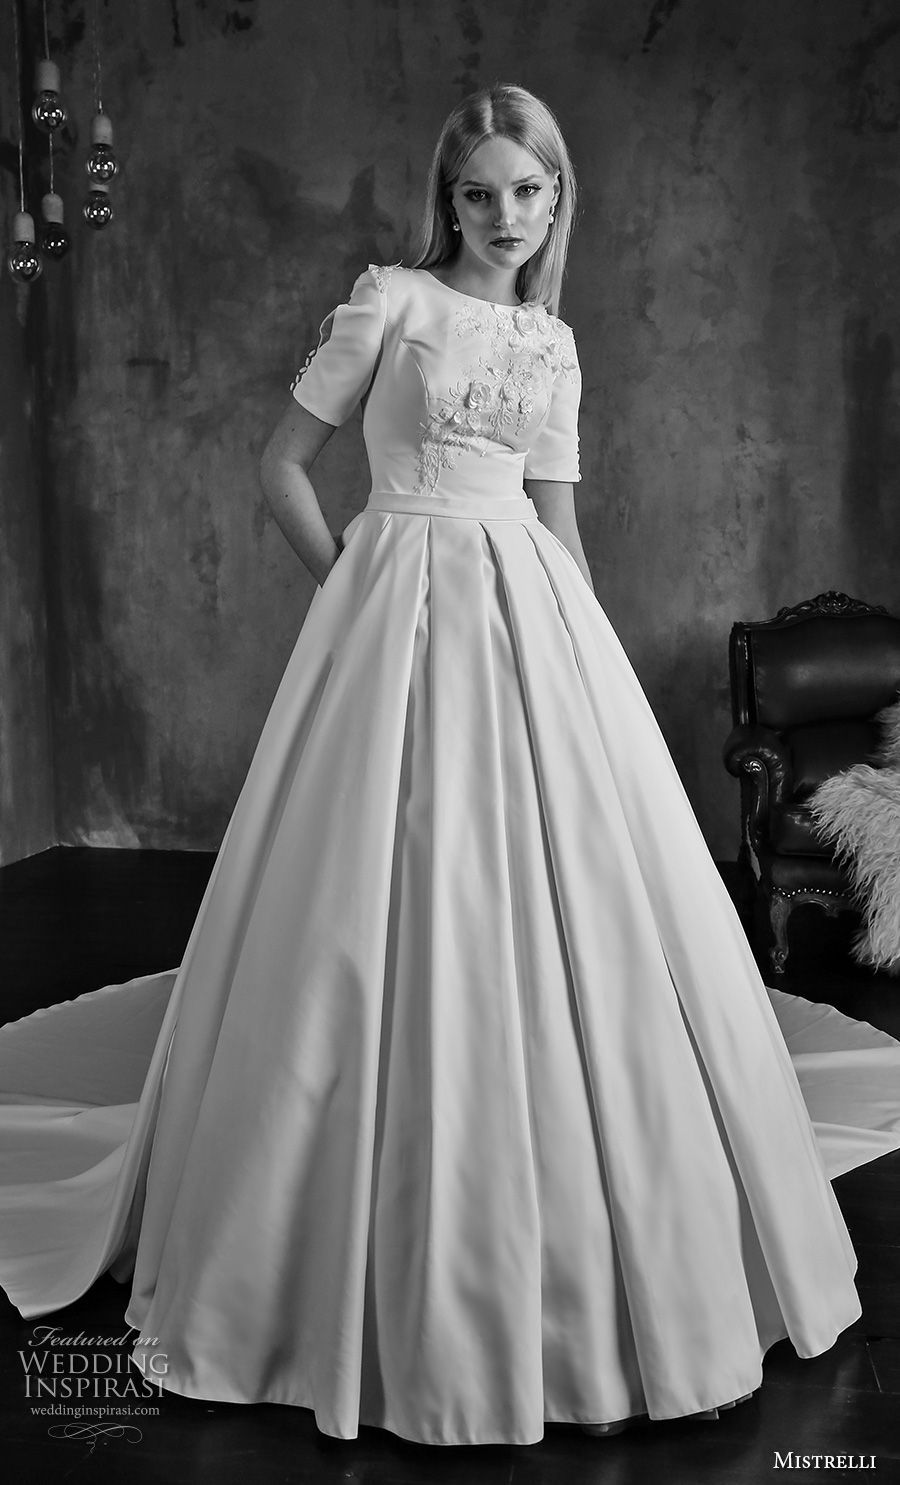 Mistrelli wedding dresses u ucmodern renaissanceud bridal